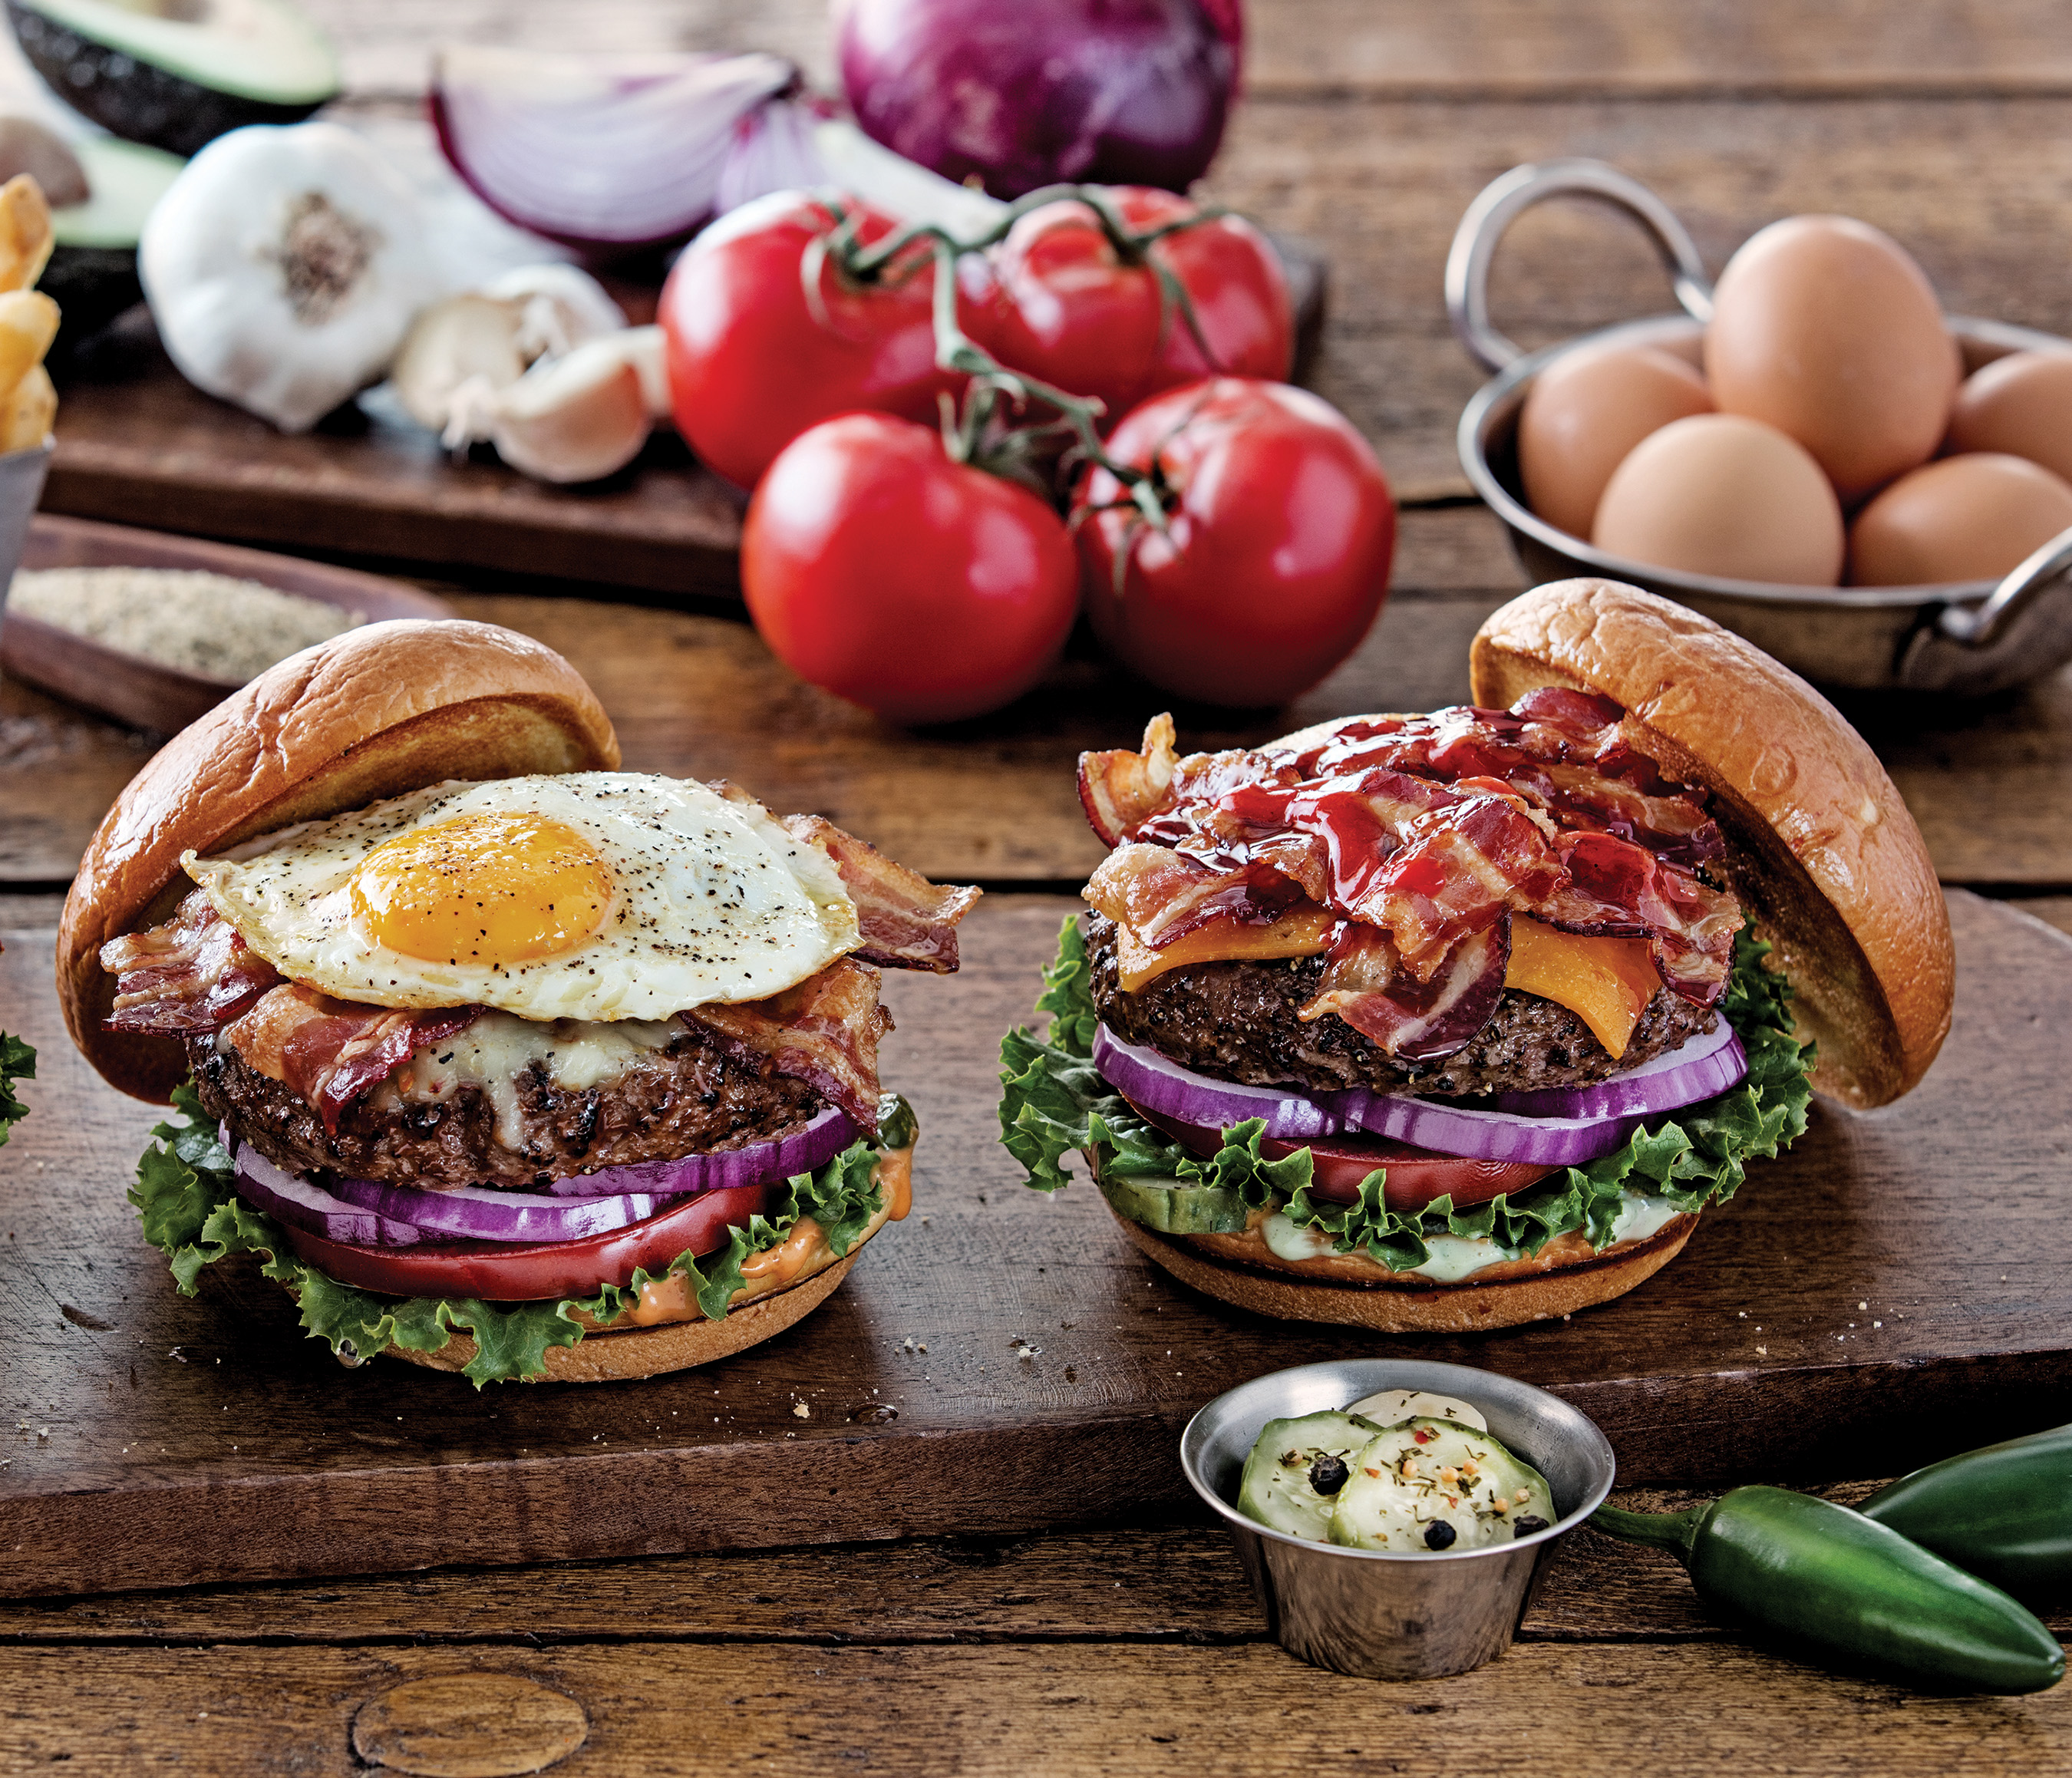 Chili's adds two new burgers, both available with a 100% grass-fed patty. The Sunrise Burger features a cage-free egg on top.